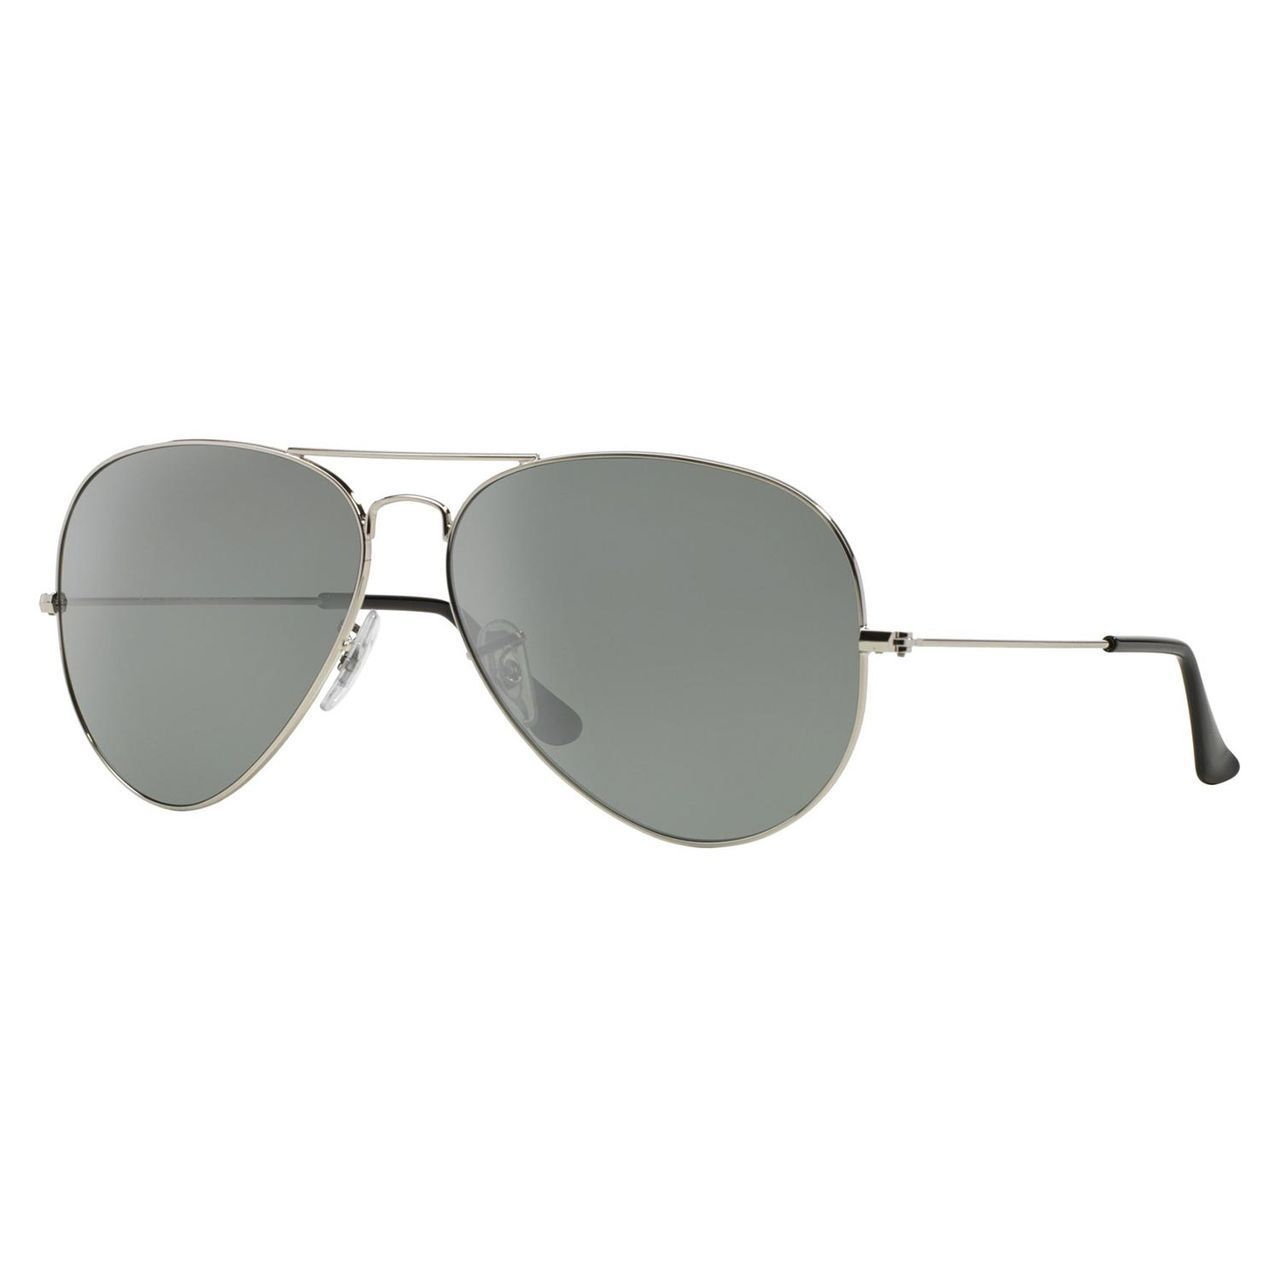 Ray-Ban Women s 3025 003 40 62 Large Silver Crystal Aviator Sunglasses c4c671cf7fe